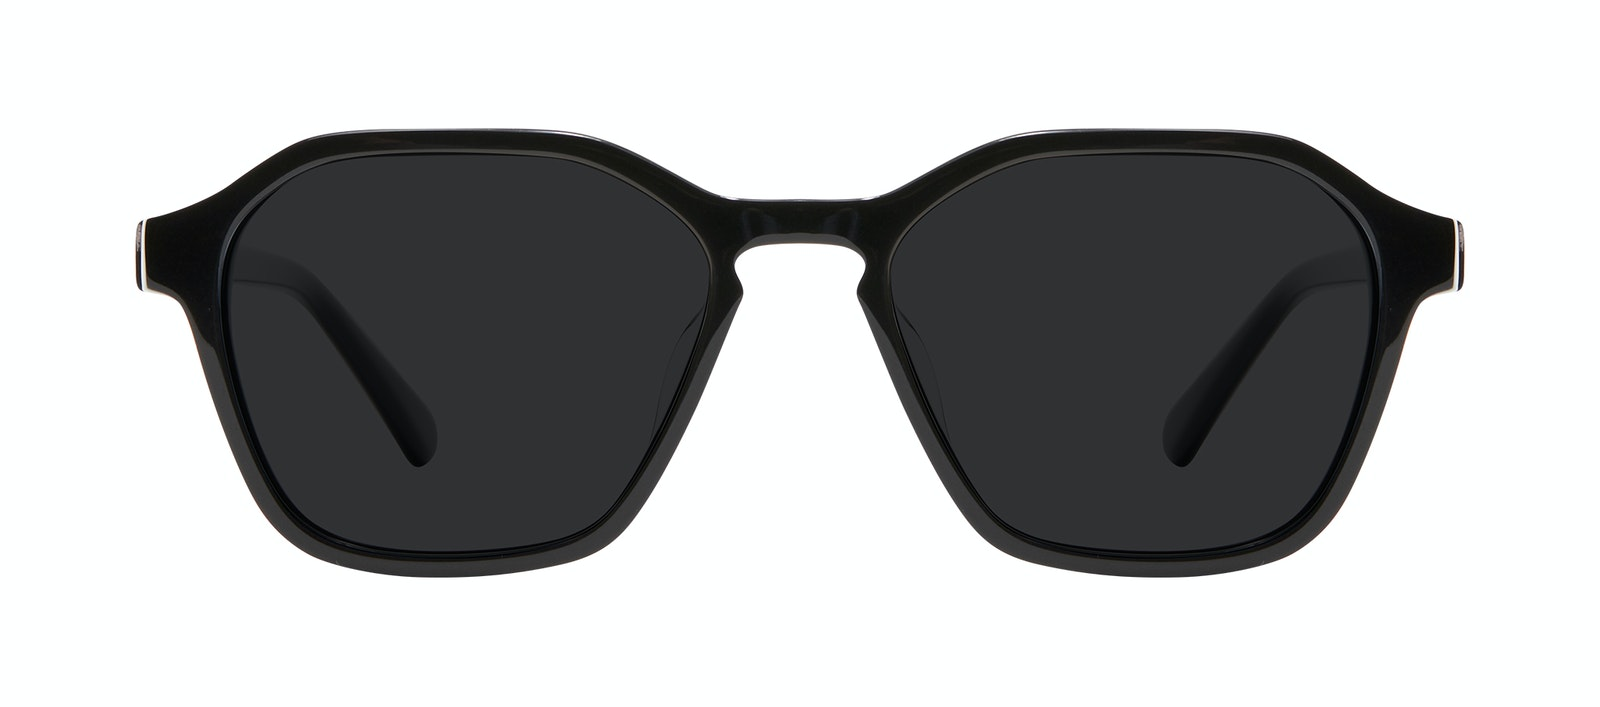 Affordable Fashion Glasses Square Sunglasses Men Birdie Black Front